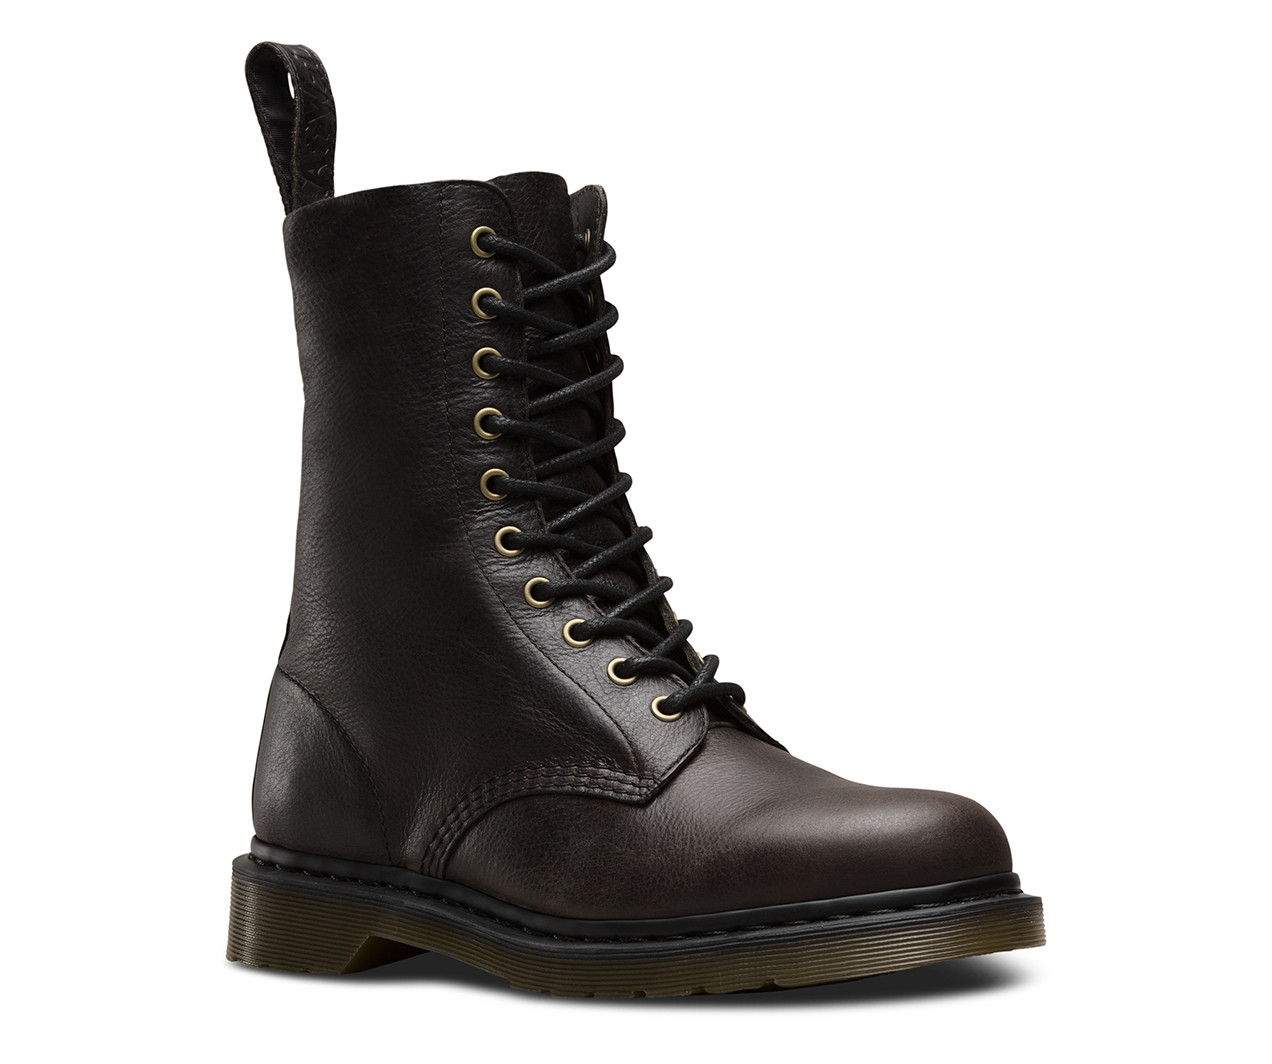 1490 Harvest Tall Boots The Official Us Dr Martens Store